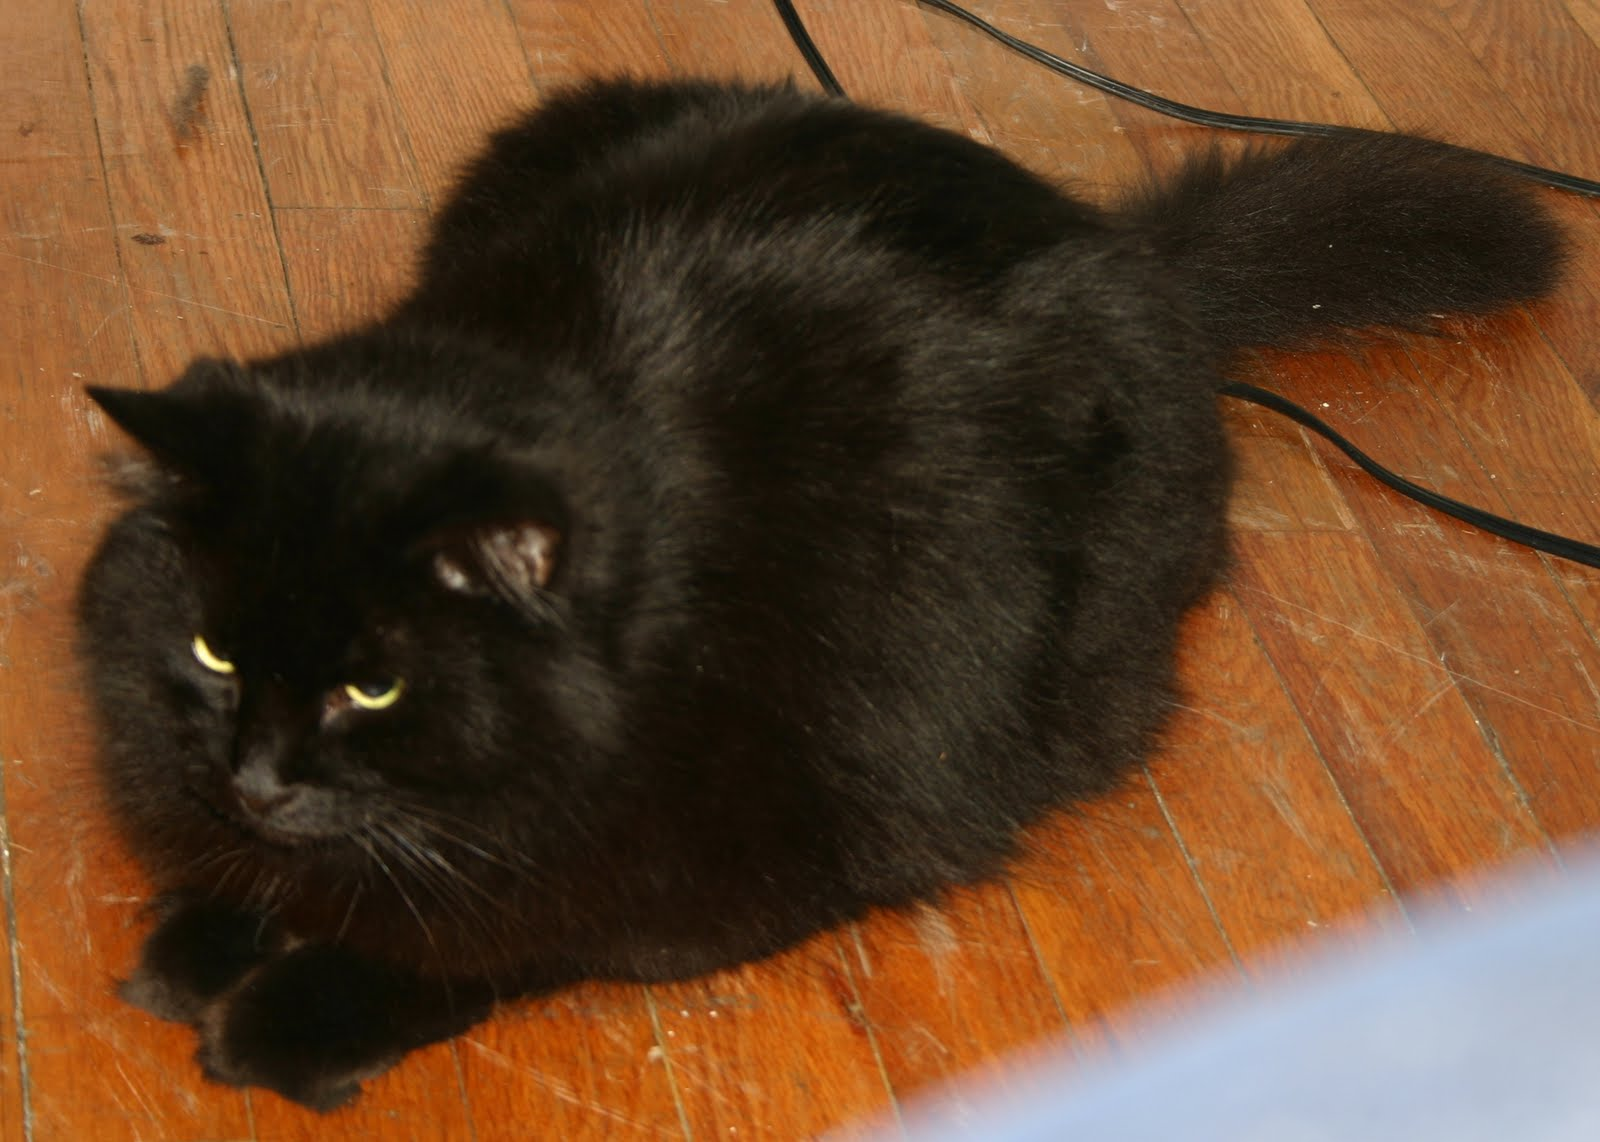 This is Tenz, my fat black cat who I love dearly, and have emotionally ...